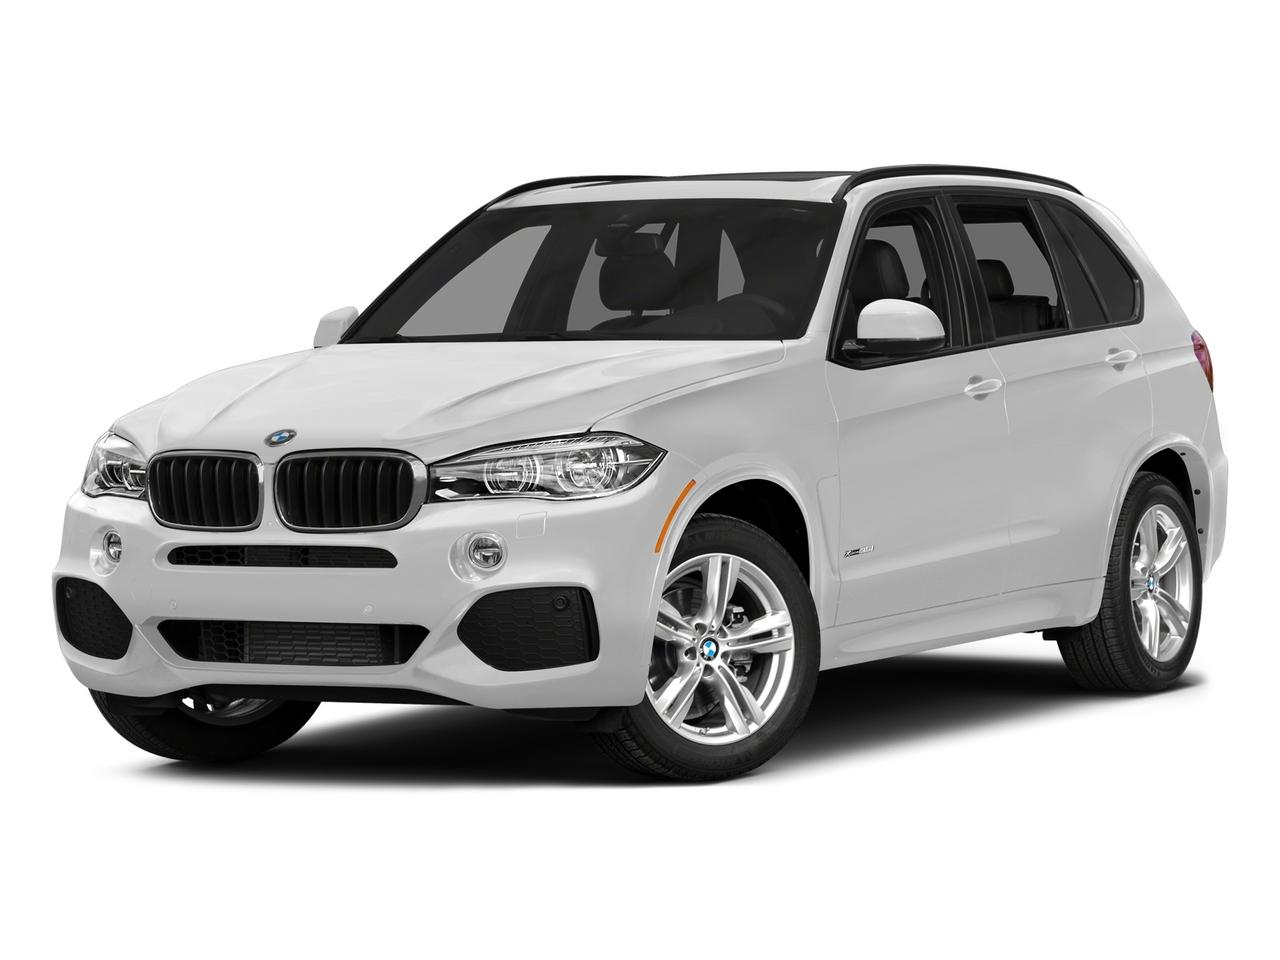 2015 BMW X5 xDrive35i Vehicle Photo in El Paso , TX 79925